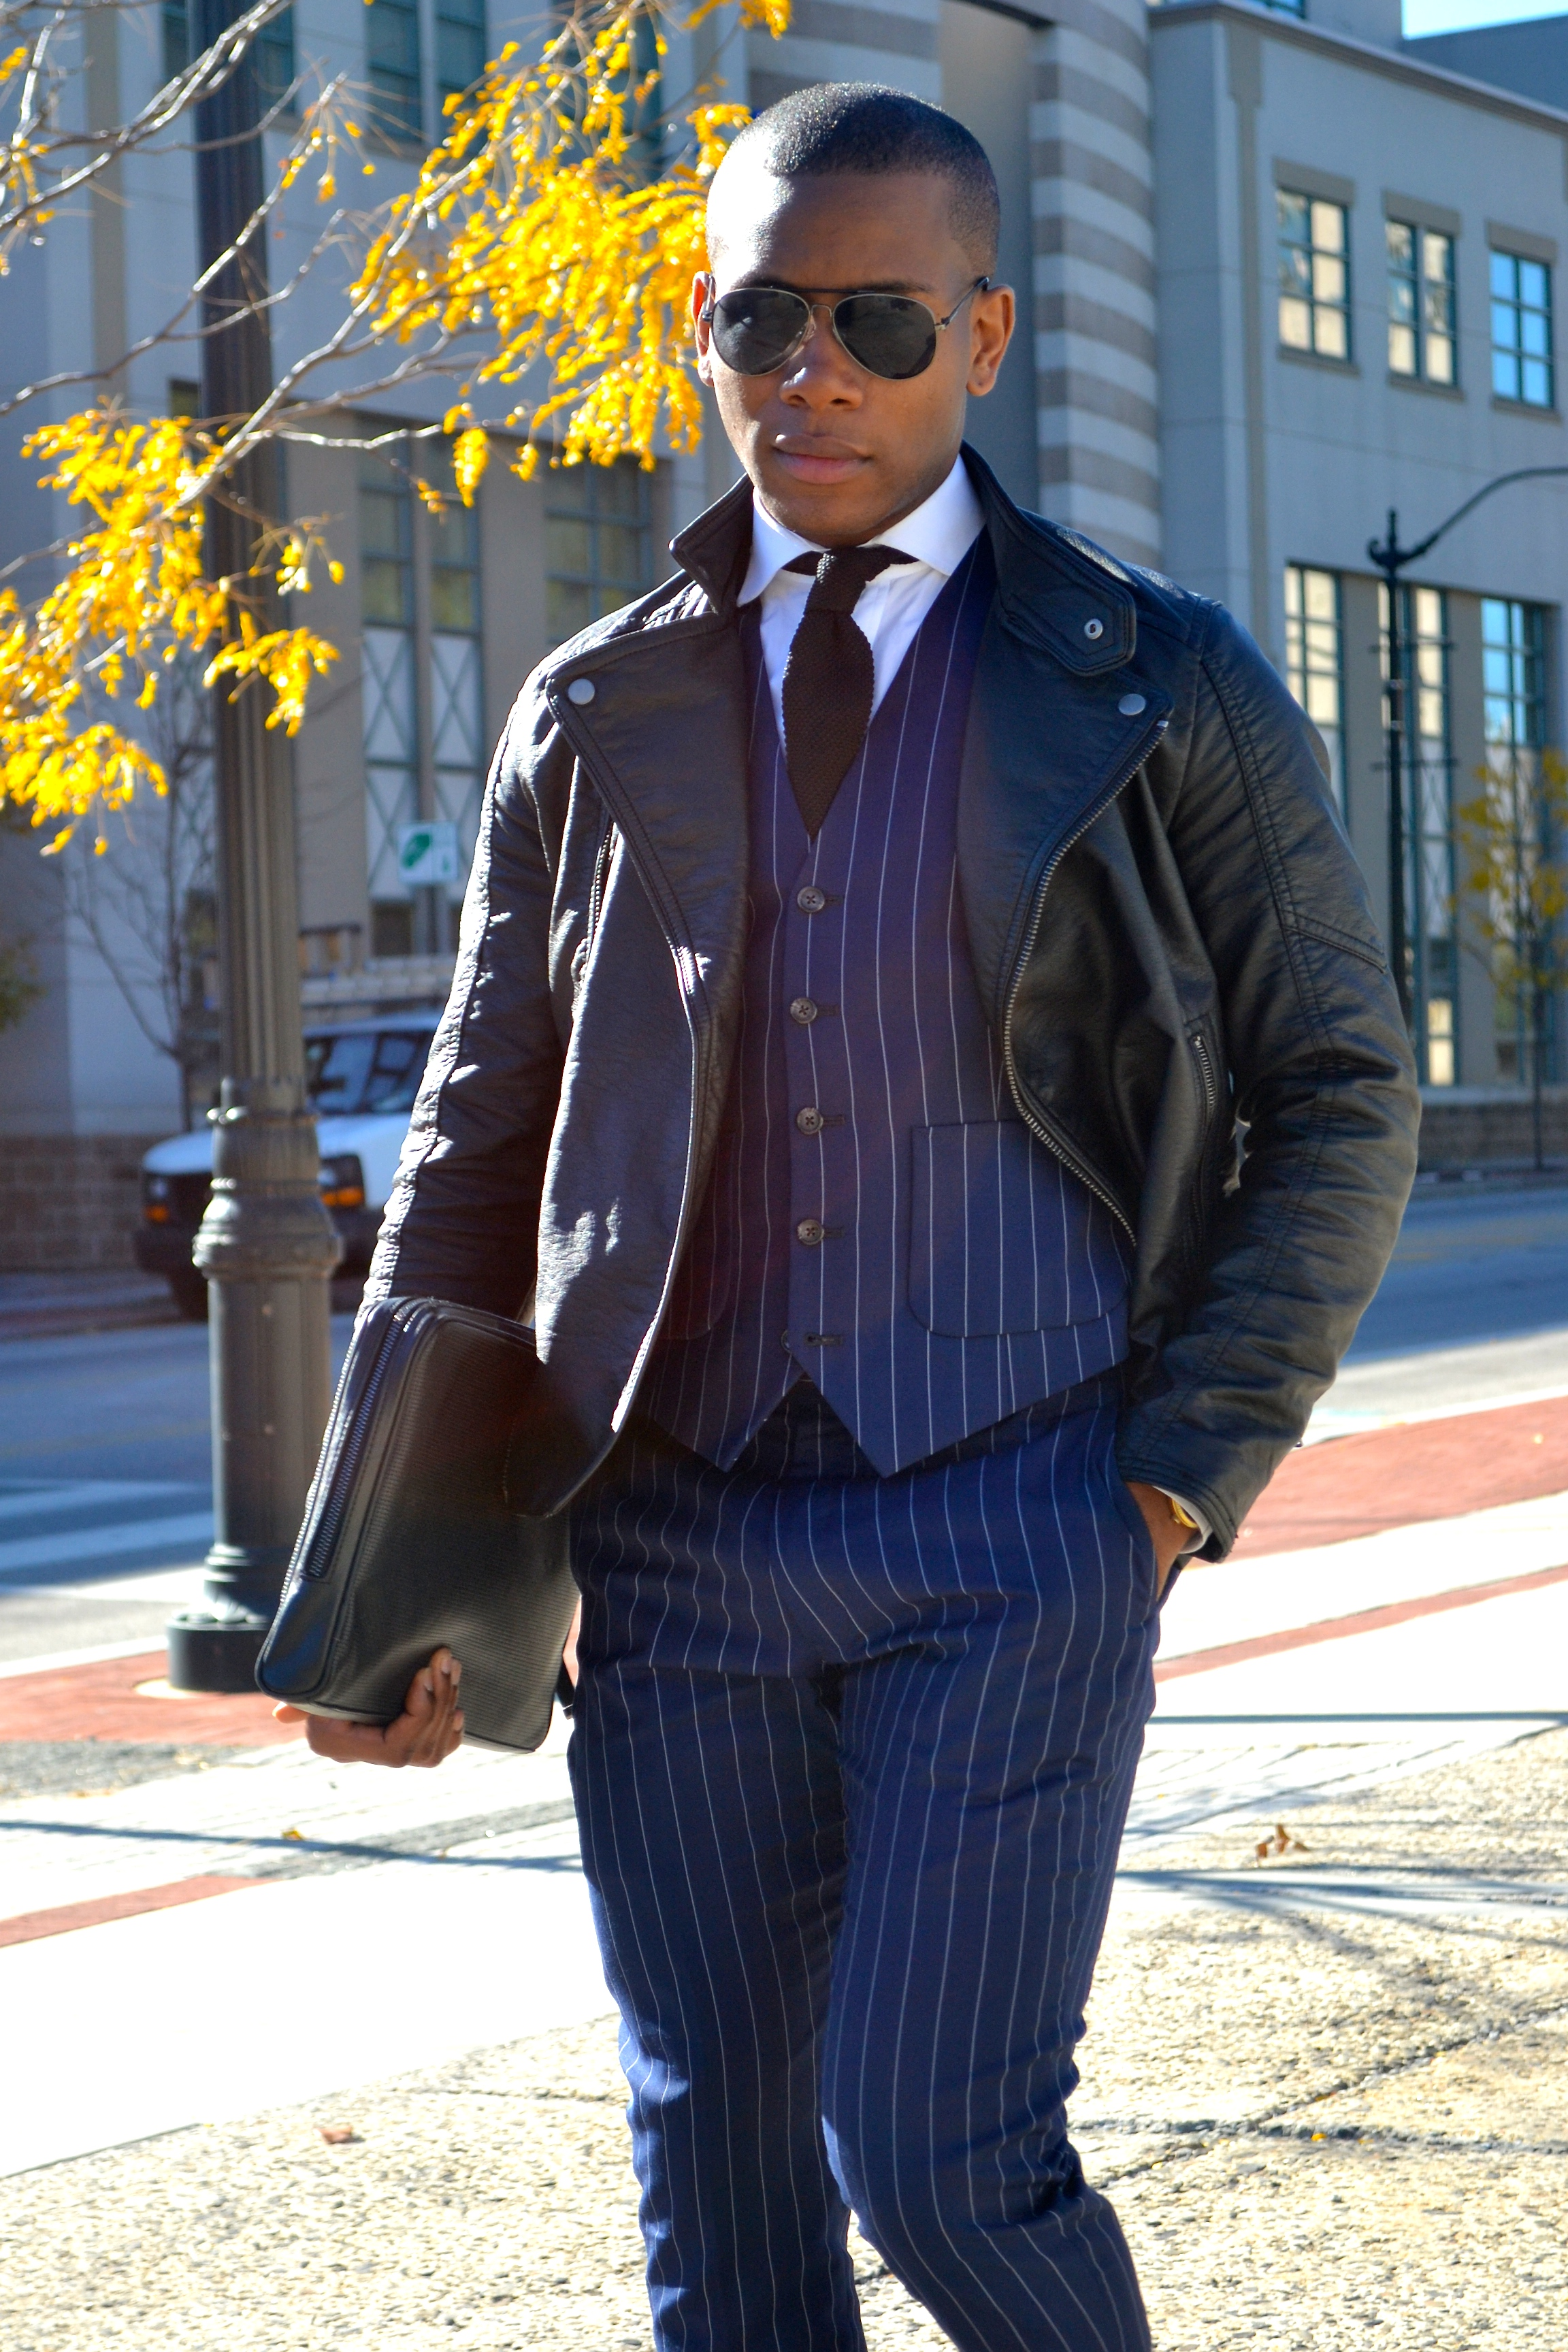 Sabir M. Peele of Men's Style Pro in Imparali Chalk Stripe Suit